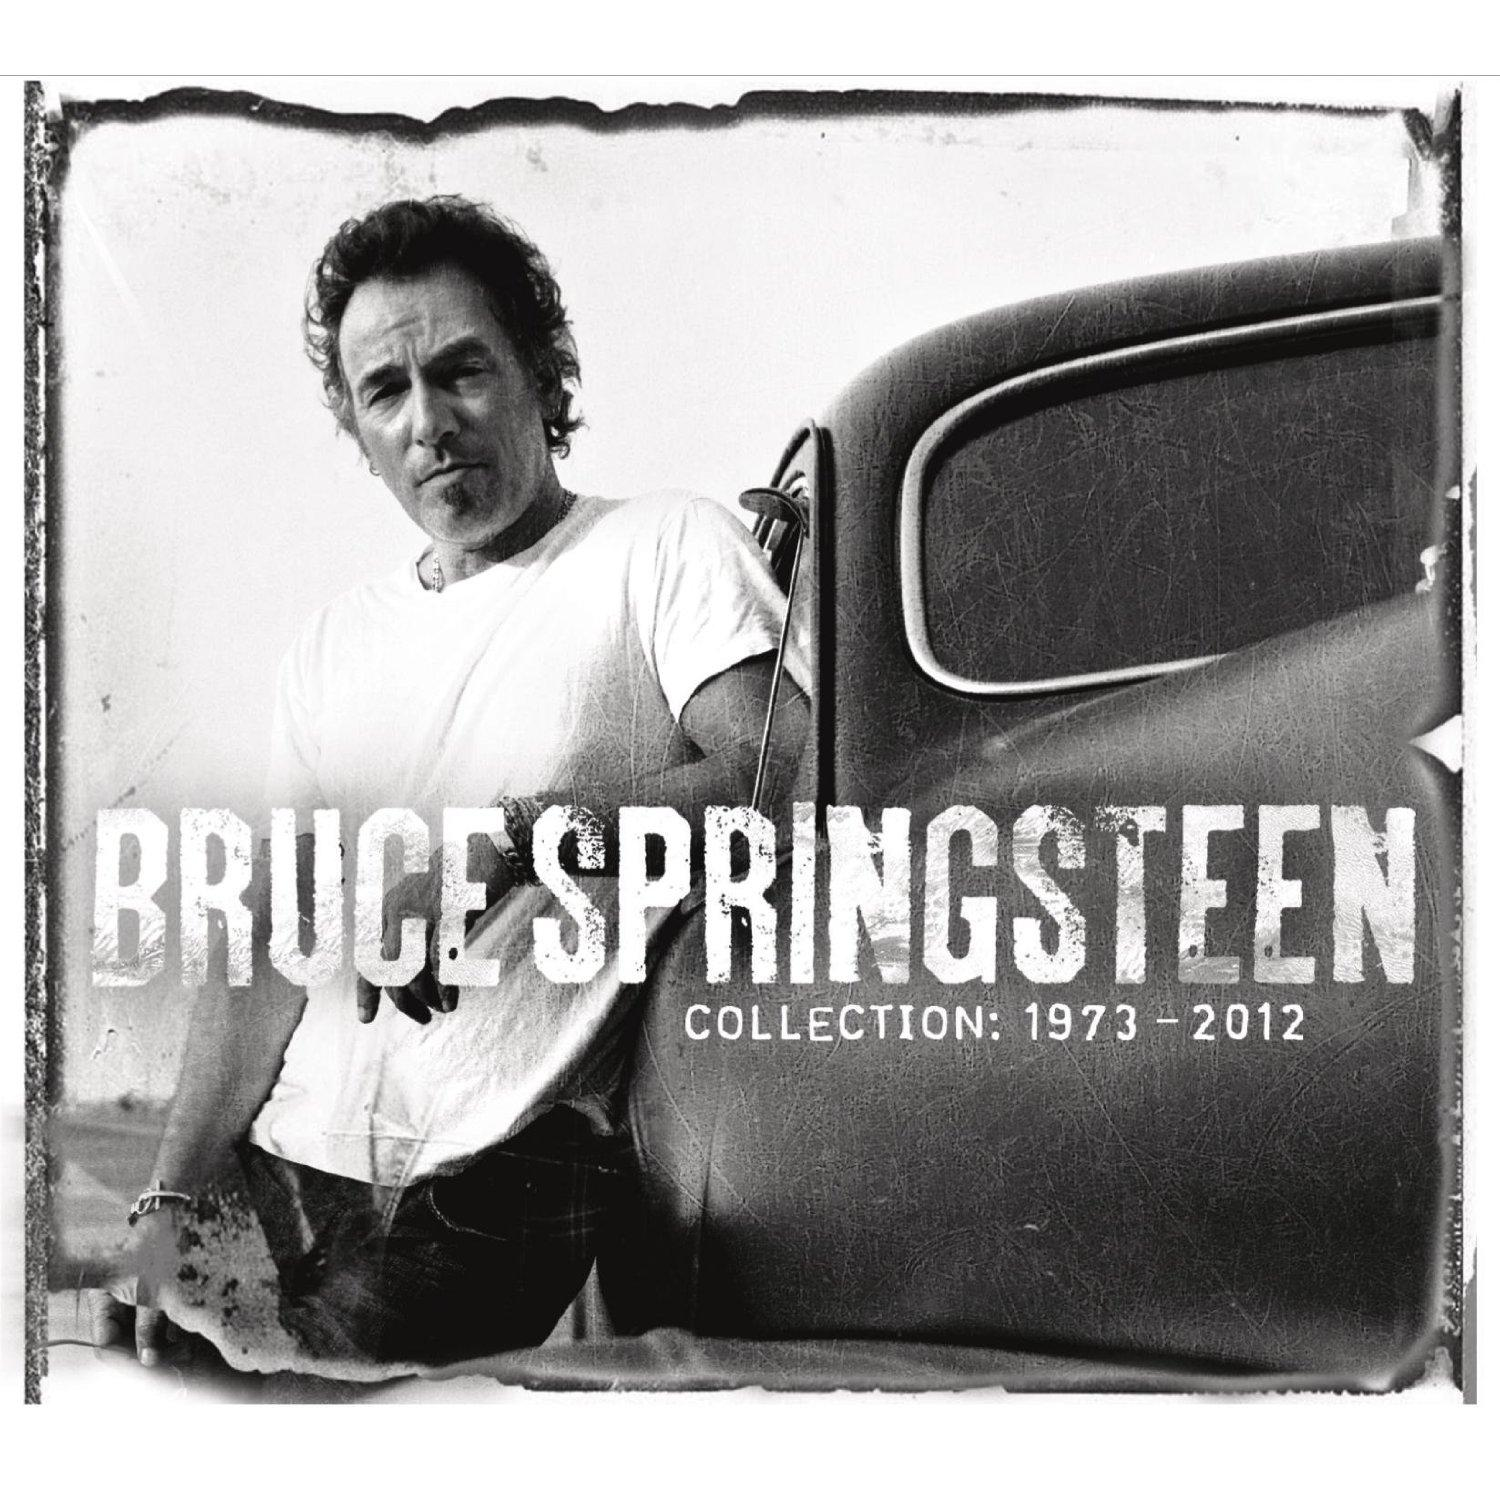 [Multi]Bruce Springsteen - Collection 1973-2012 (2013) [MULTI]